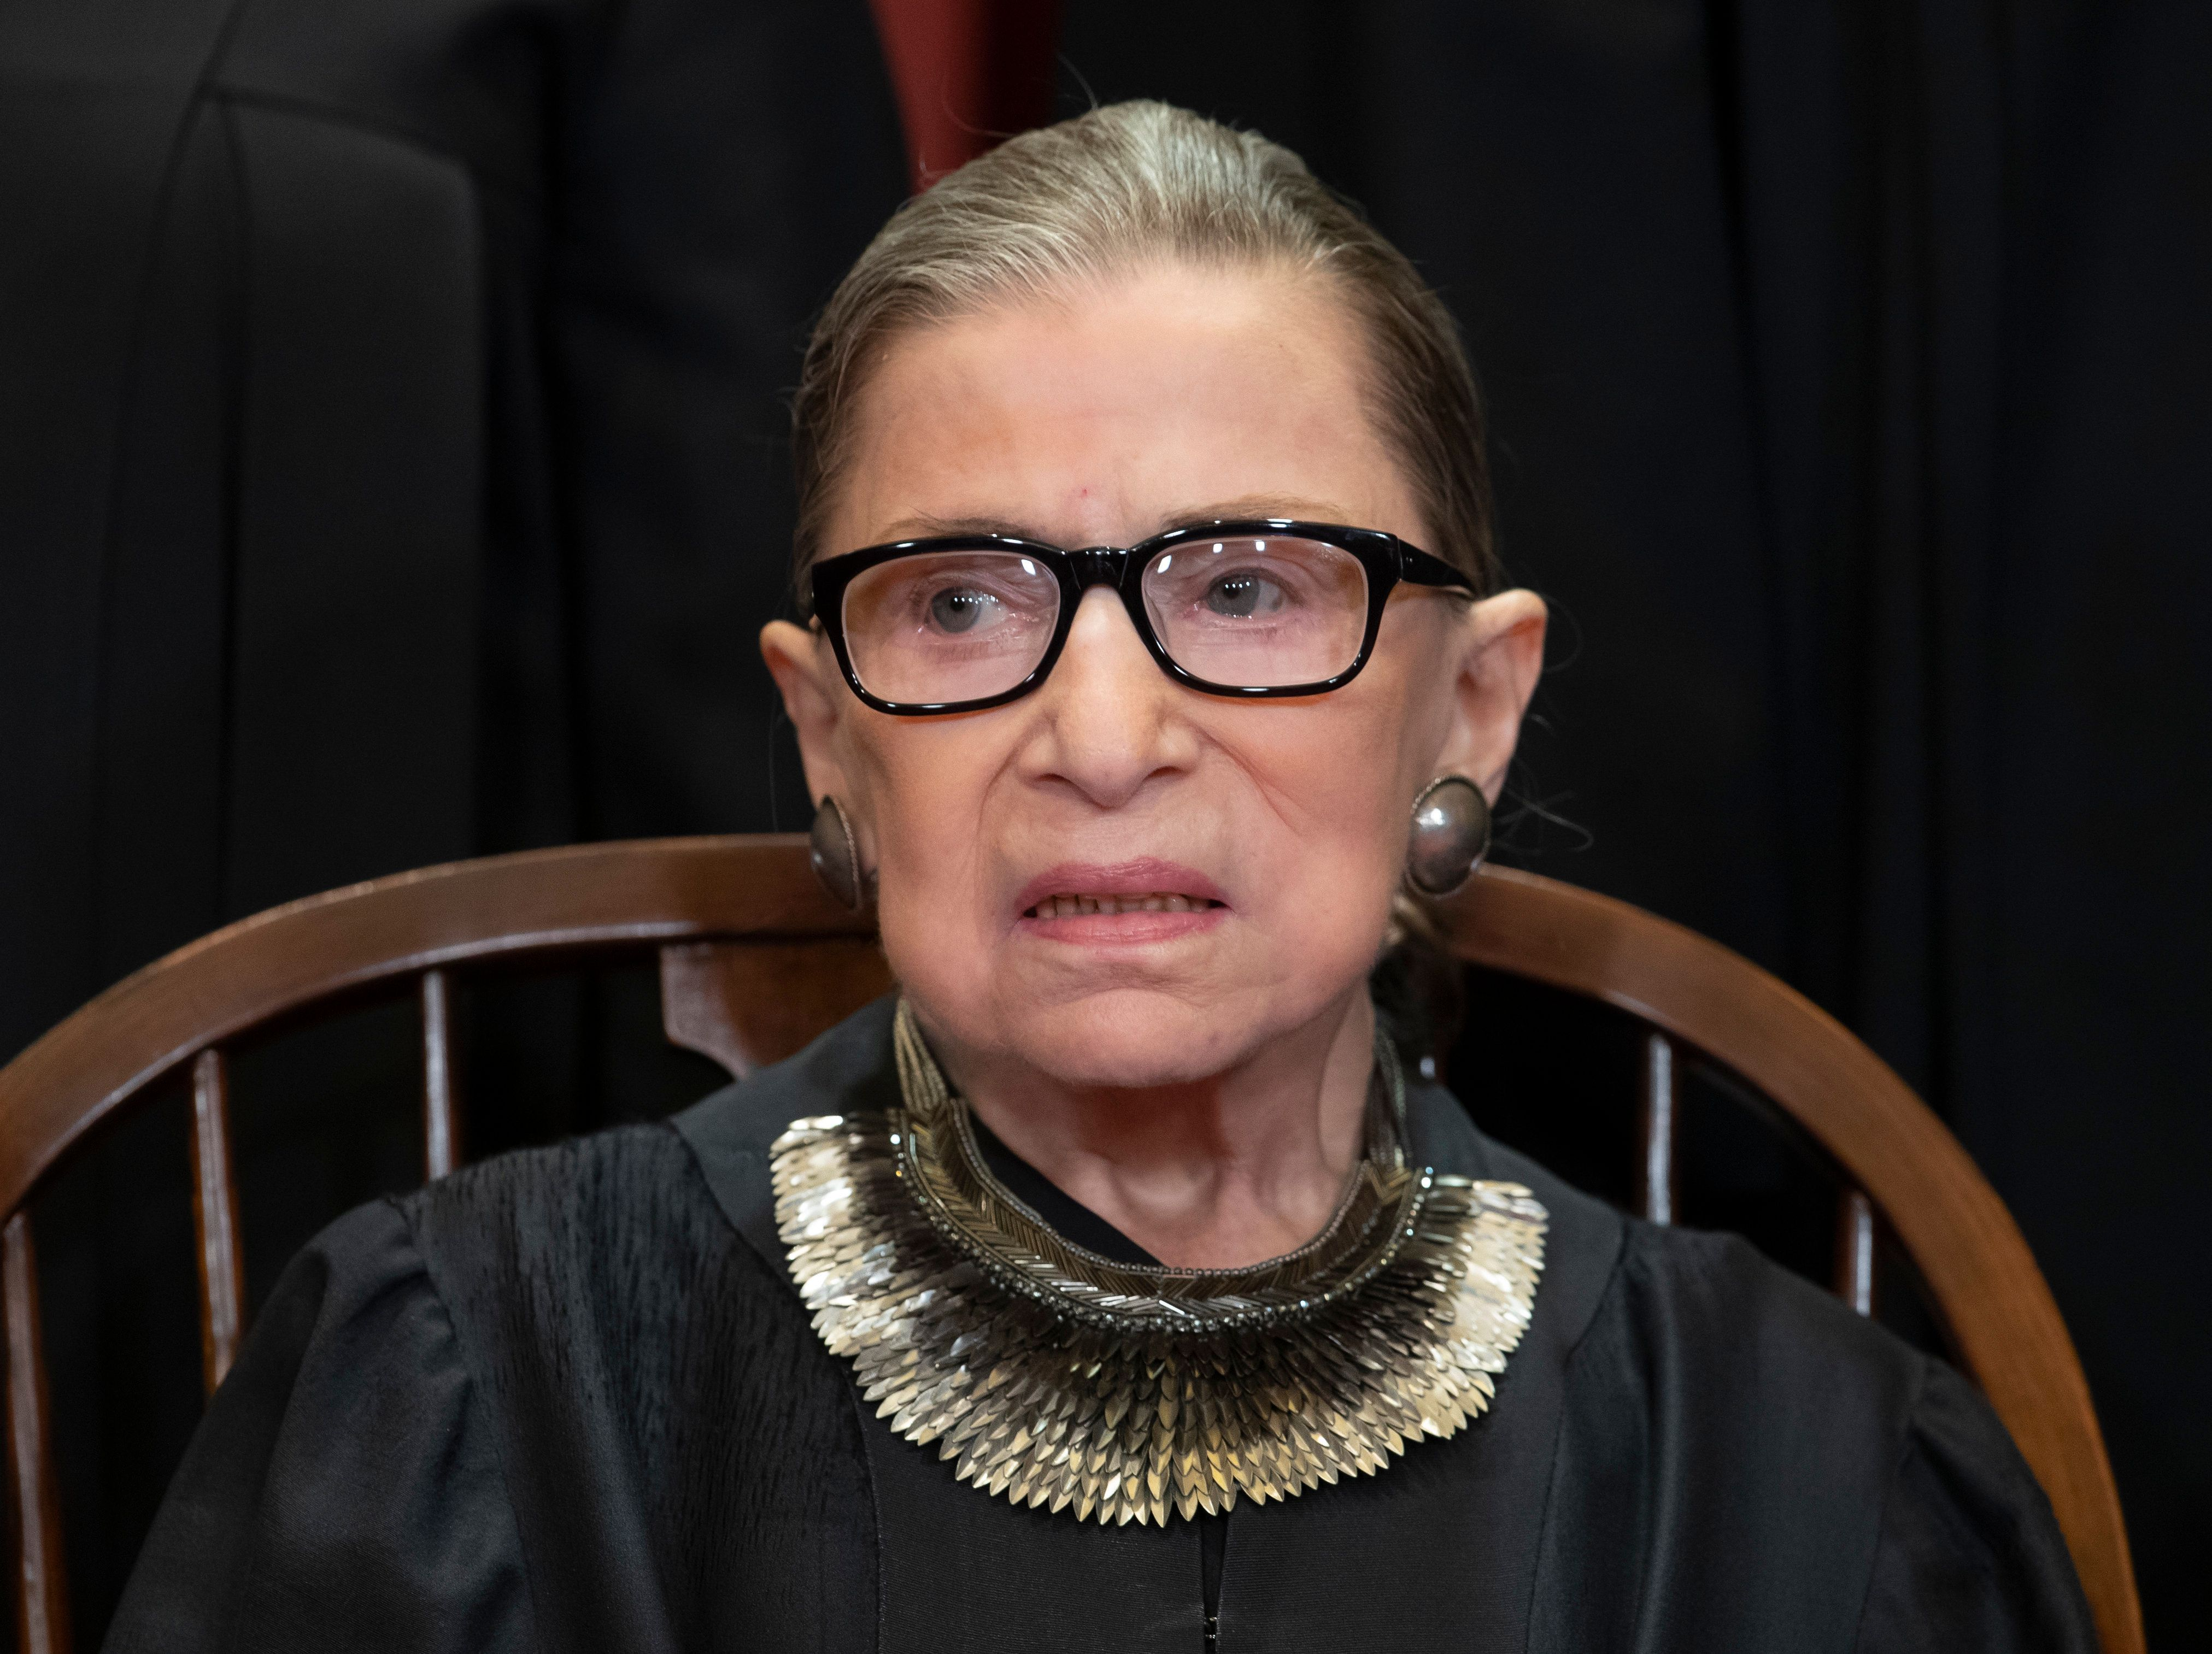 FILE - In this Nov. 30, 2018 file photo, Associate Justice Ruth Bader Ginsburg sits with fellow Supreme Court justices for a group portrait at the Supreme Court Building in Washington. Ginsburg is making her public return to the Supreme Court bench, eight weeks after surgery for lung cancer.   (AP Photo/J. Scott Applewhite)